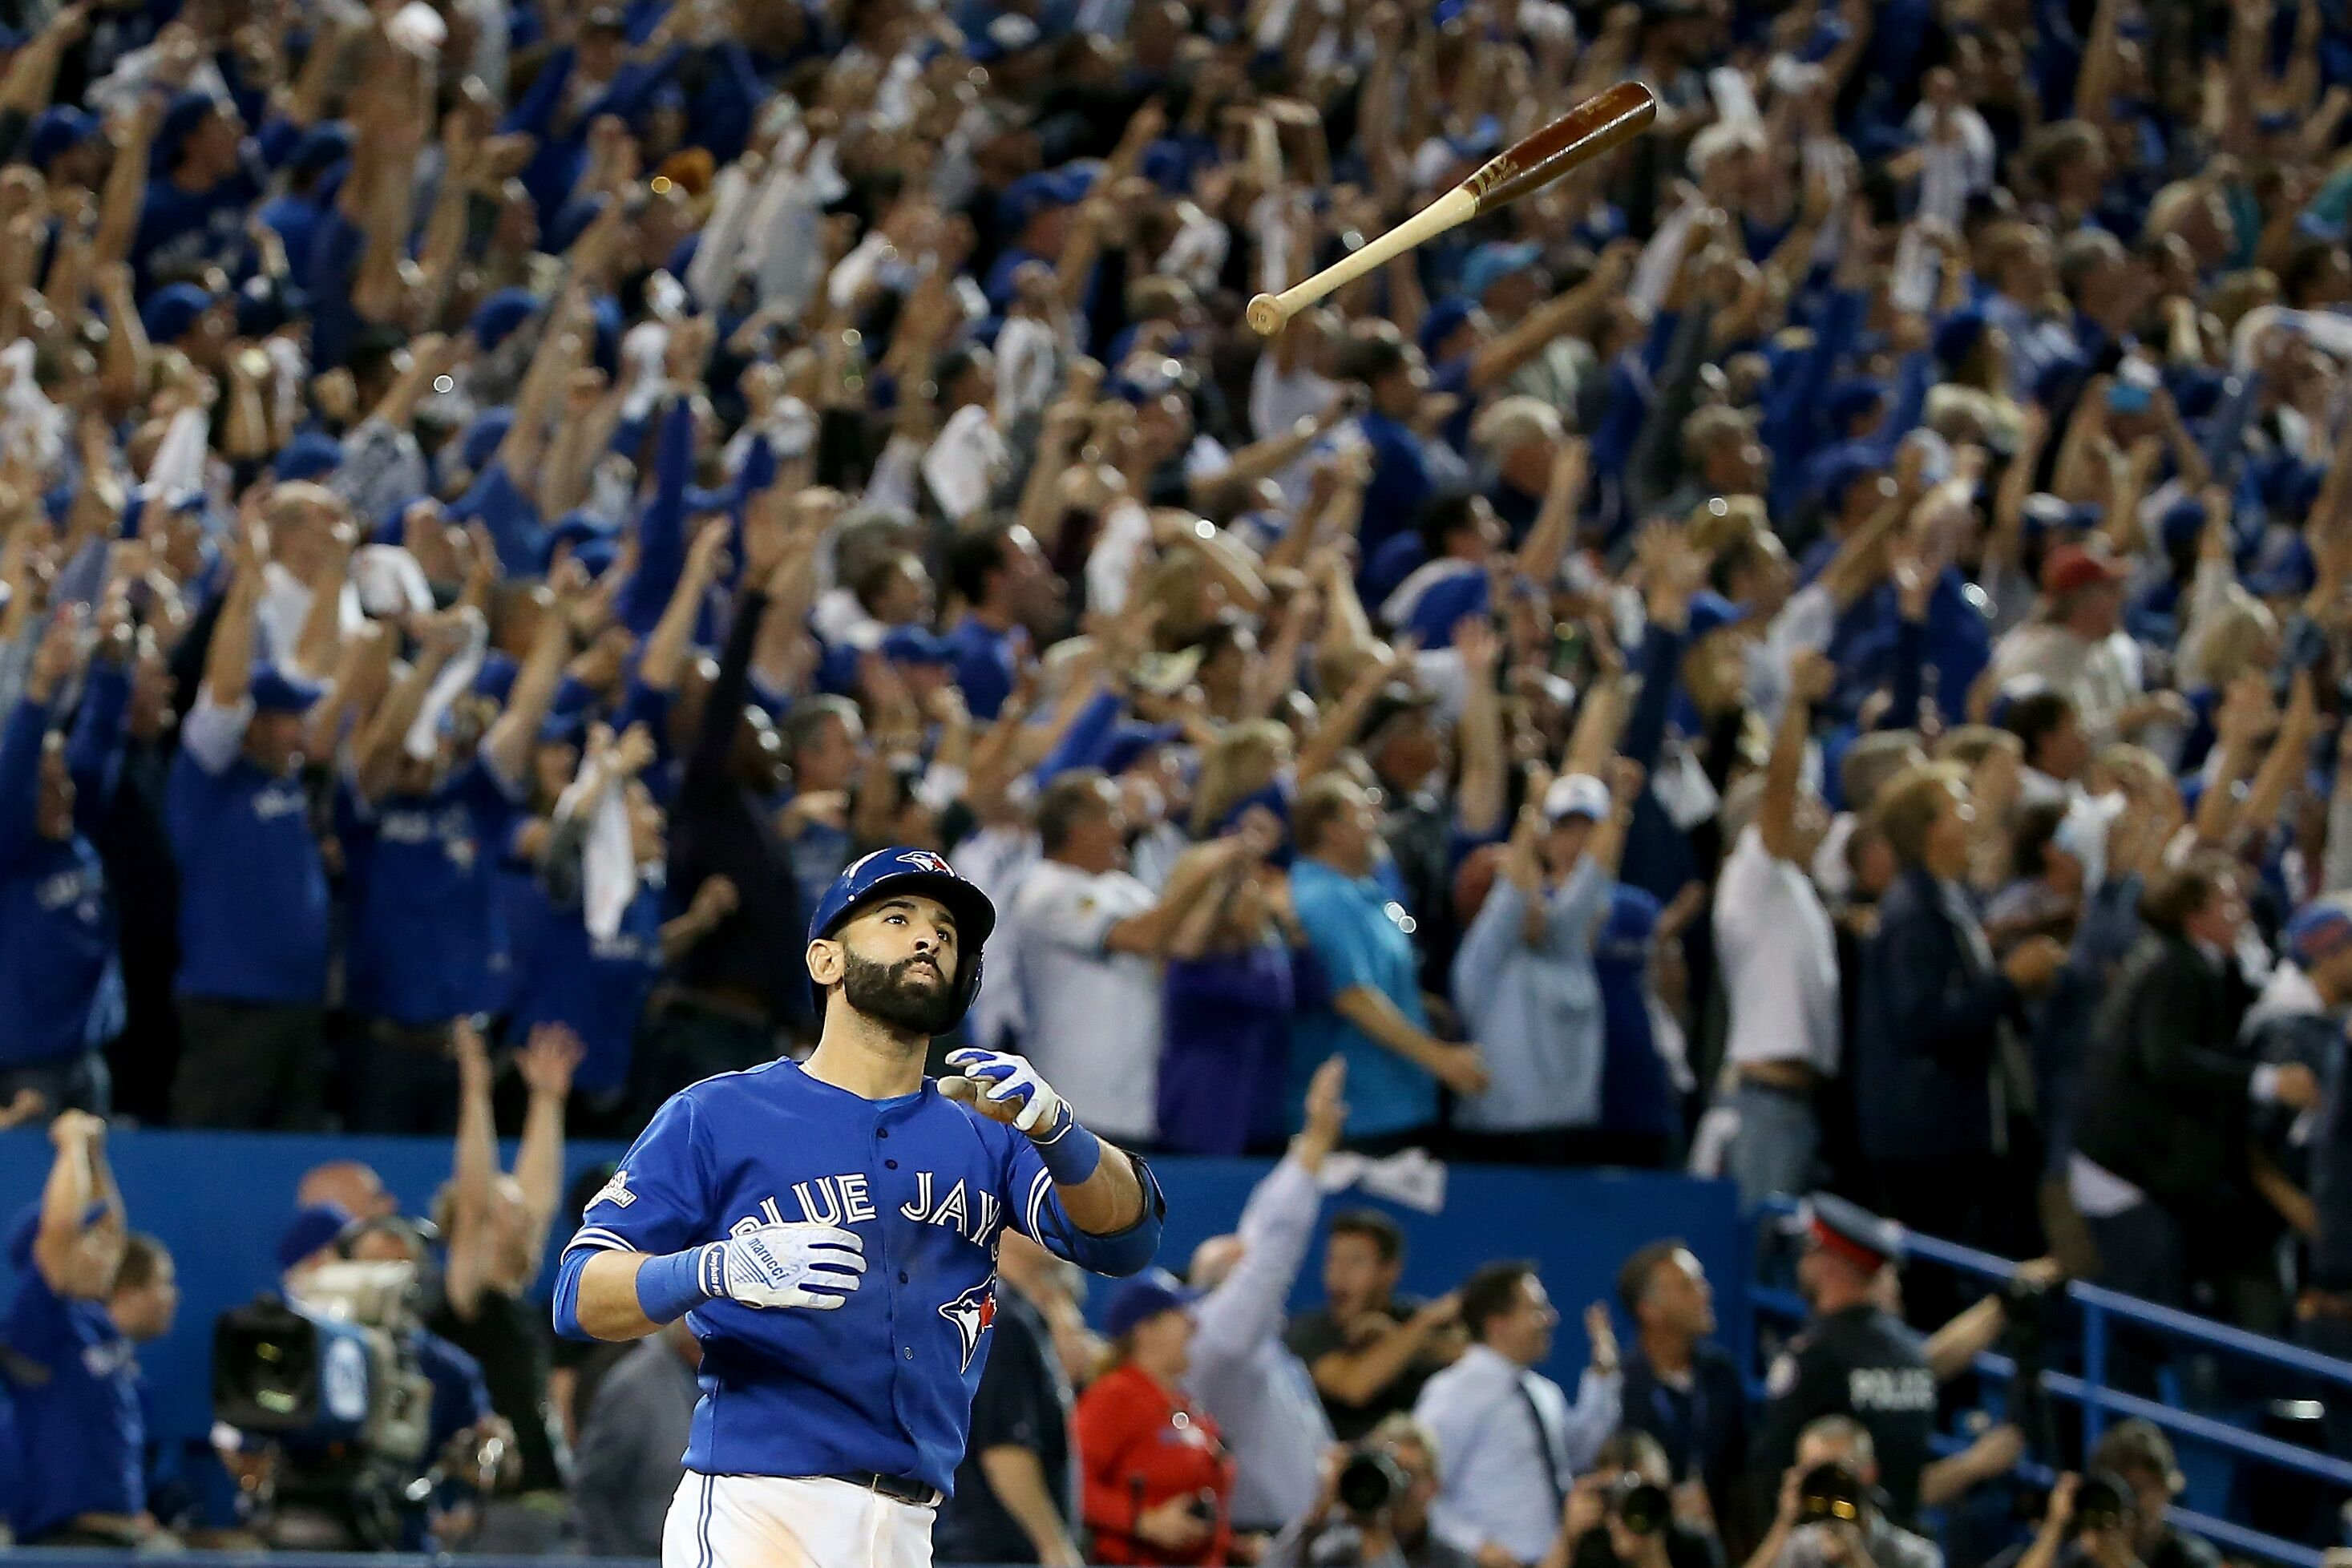 Blue Jays overcame an 0-2 ALDS deficit in 2015, and it's worth reliving